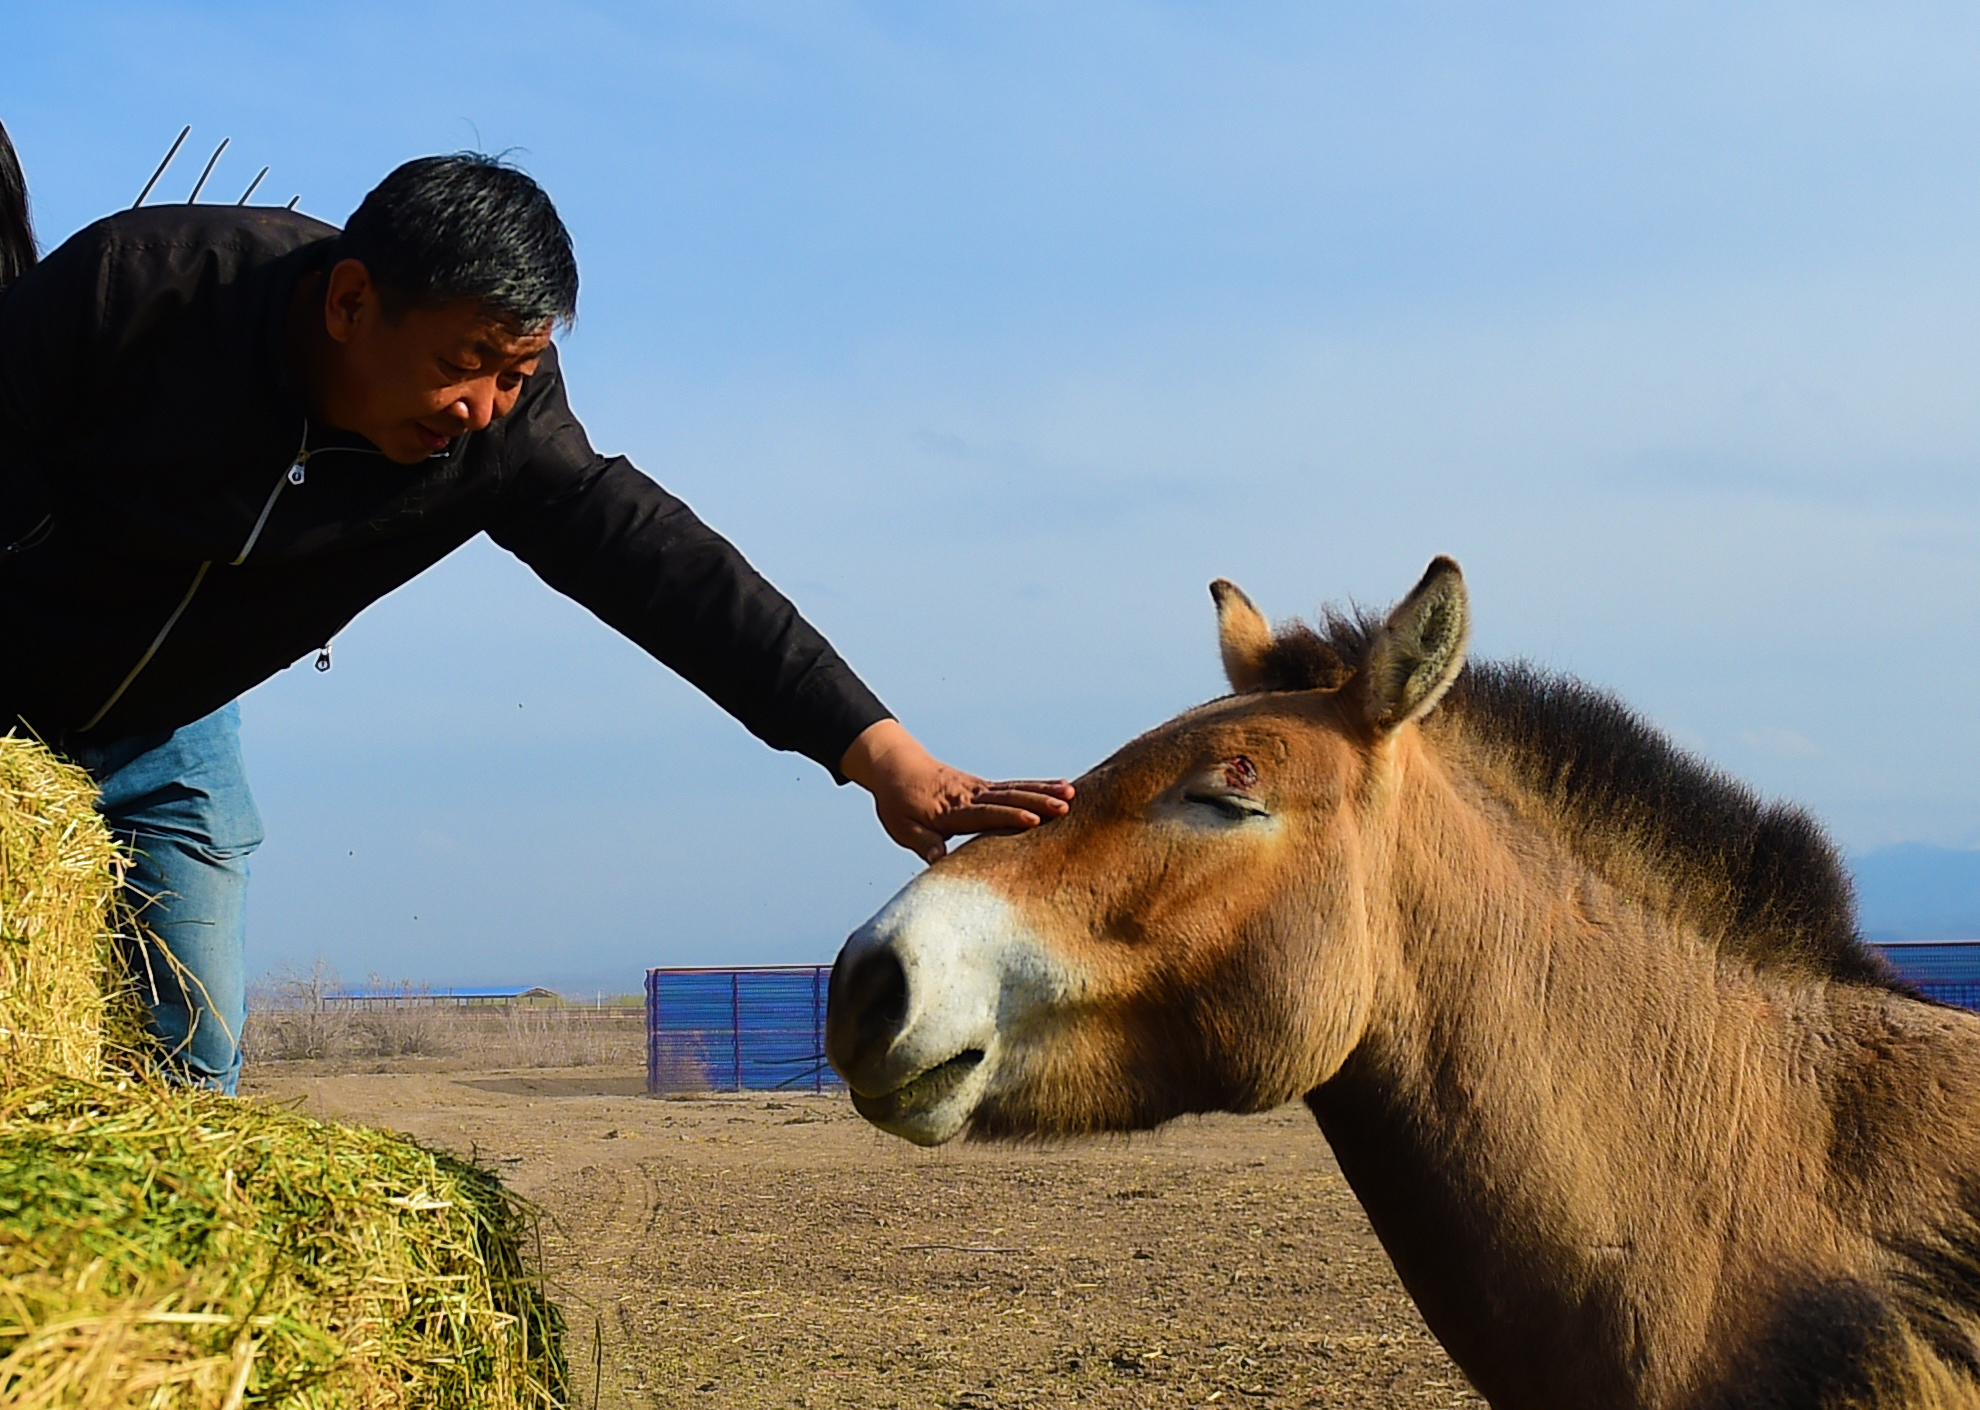 CHINA-XINJIANG-JIMSAR-PRZEWALSKI'S HORSES-BREEDING AND RESEARCH CENTER-STAFF (CN)